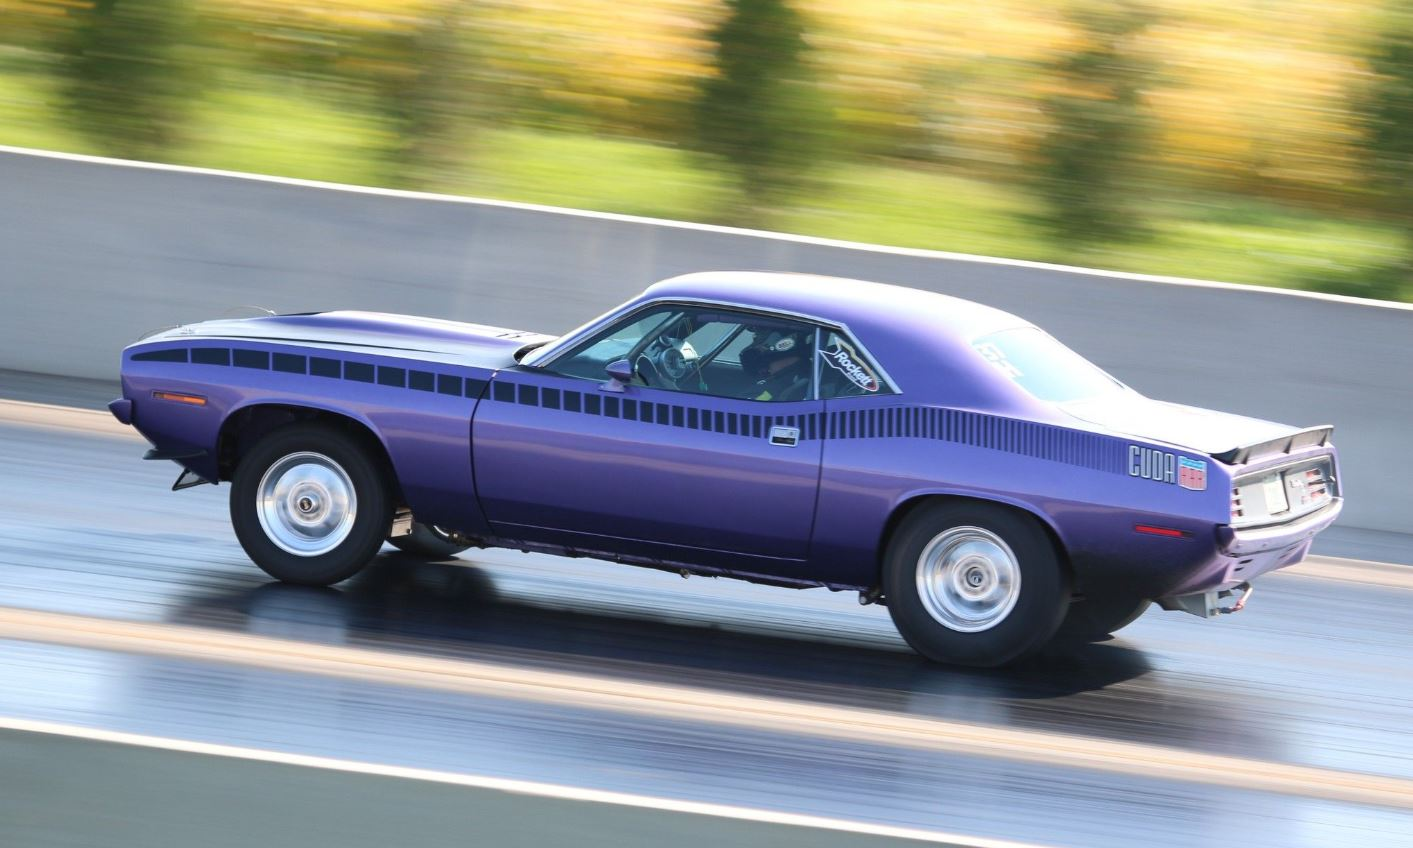 Randy Heinselman's Keith Black® HEMI® Powered '70 Barracuda